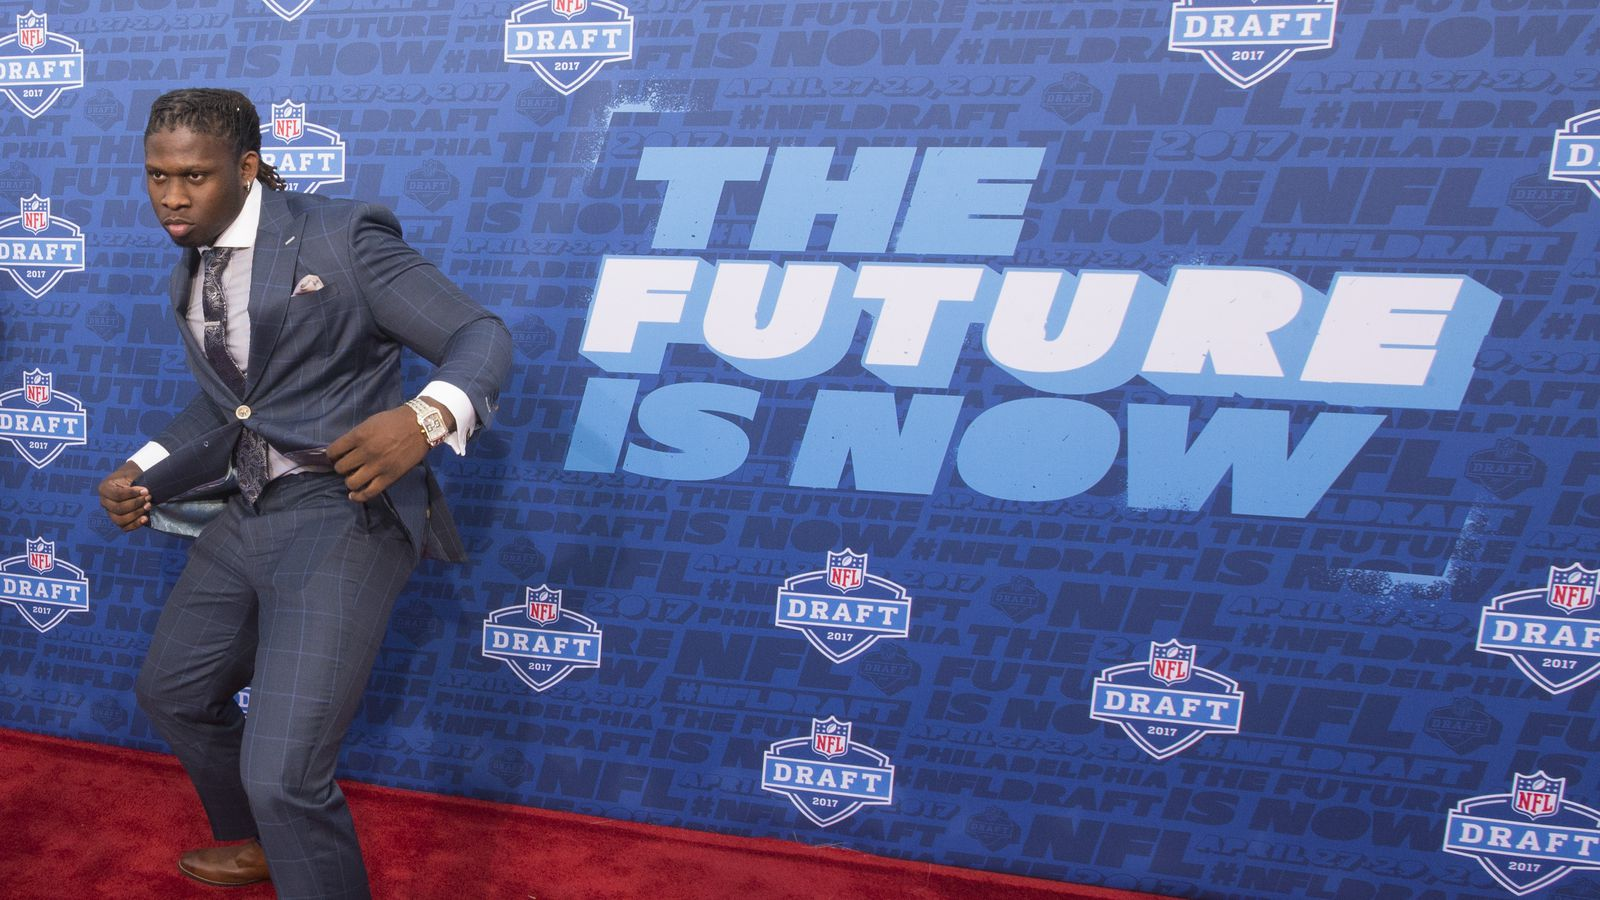 Falcons trade up for the No. 26 pick from the Seahawks to draft Takkarist McKinley